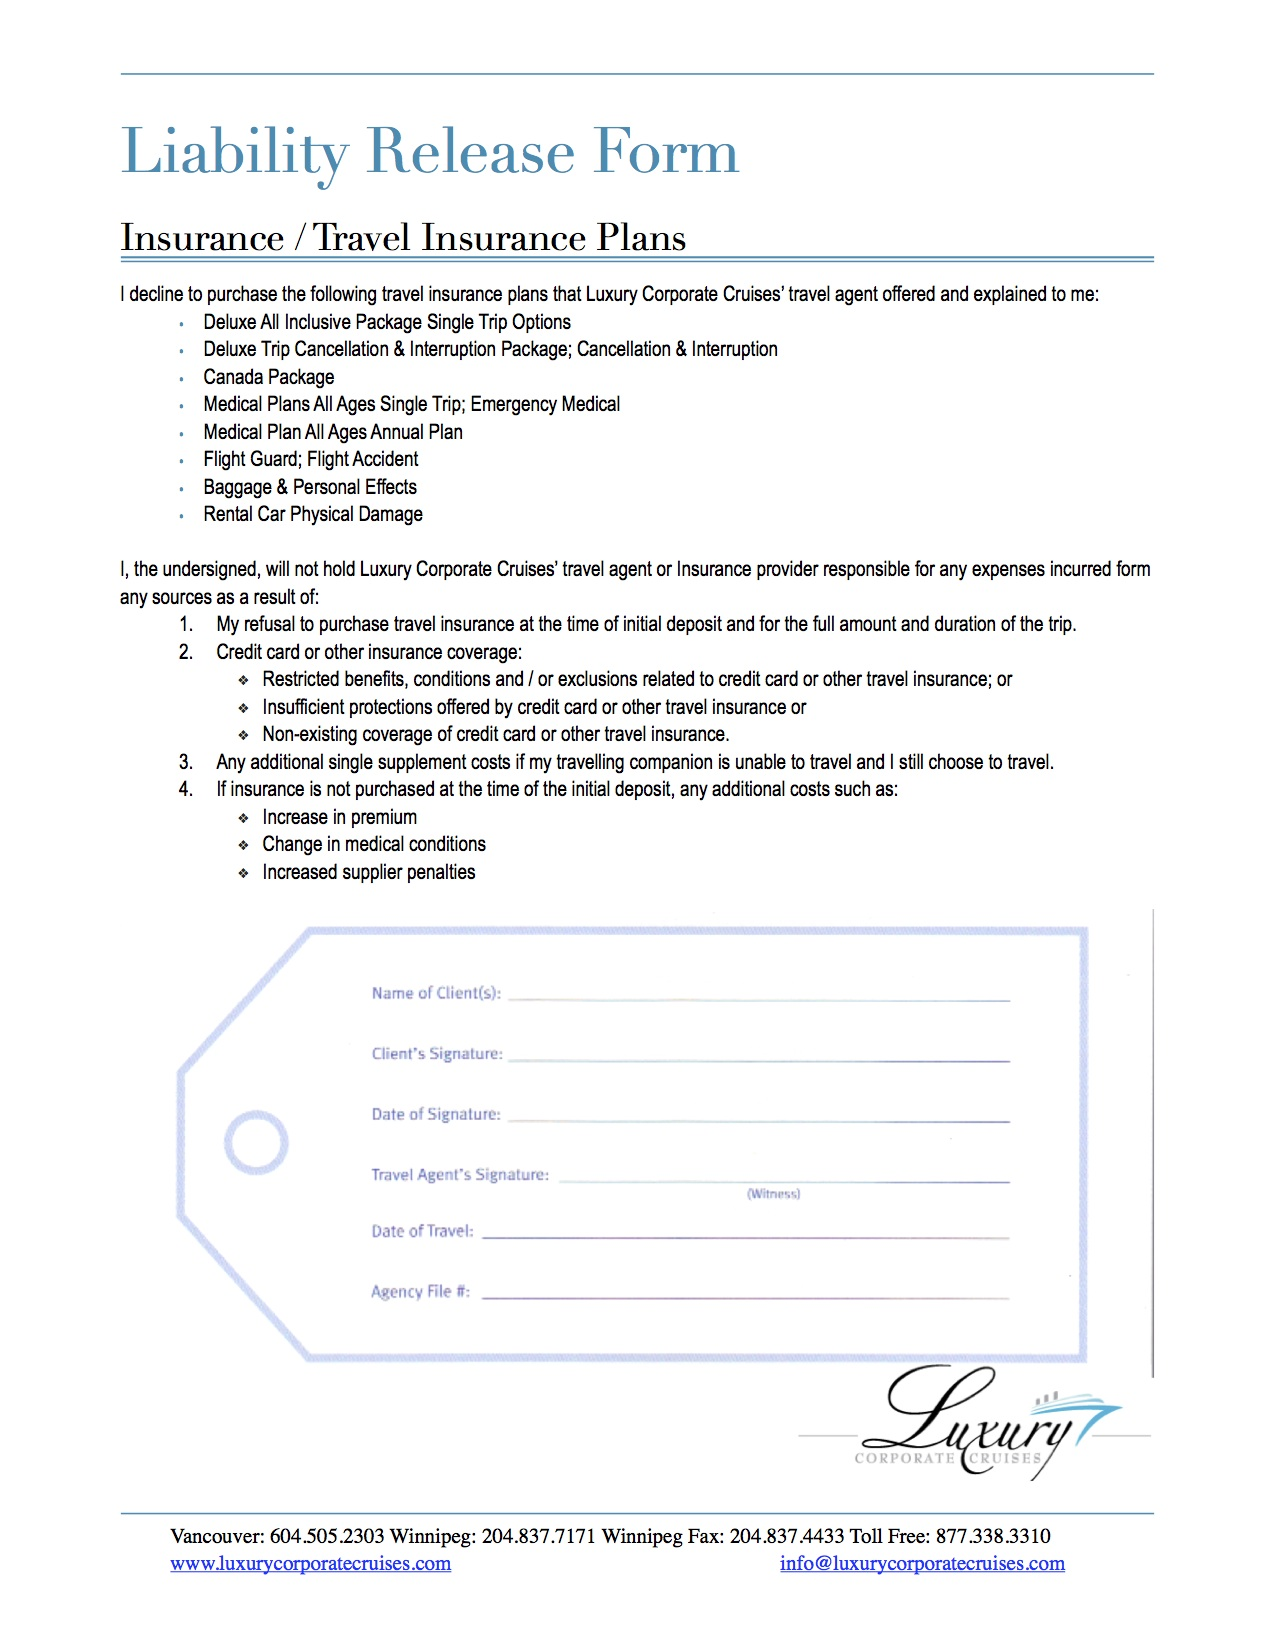 Insurance Release Form Sle Liability